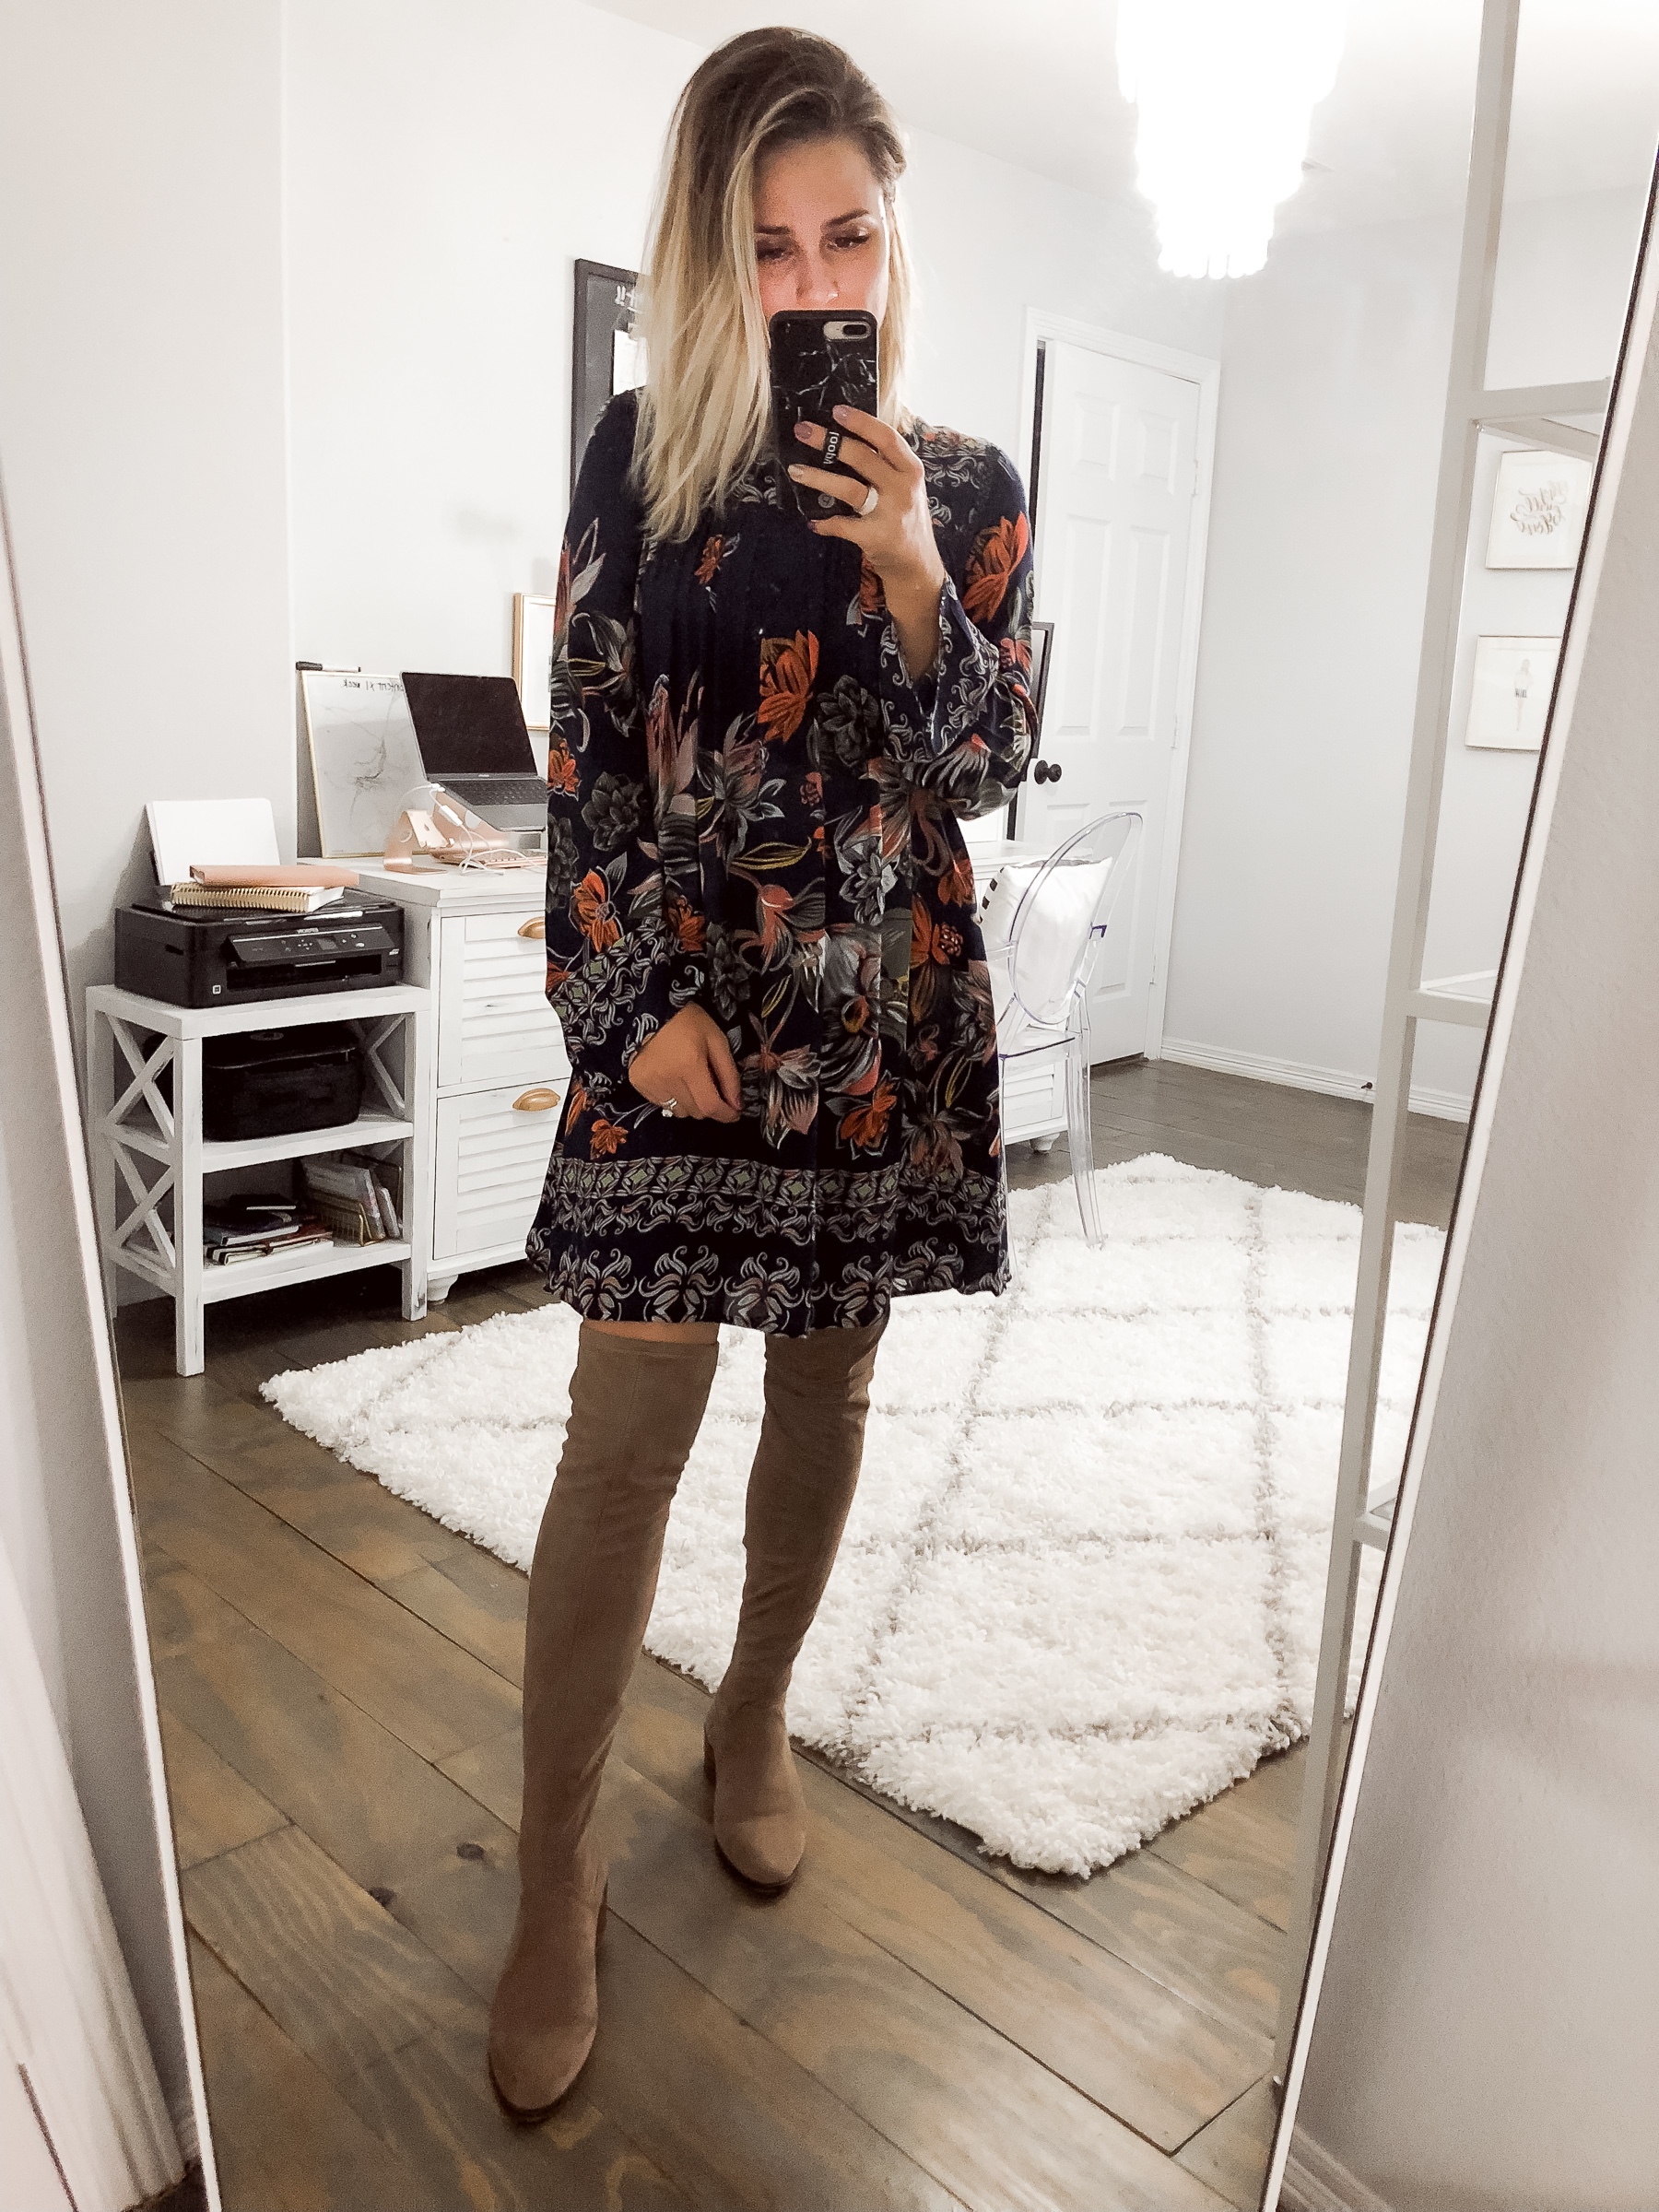 Houston fashion blogger Uptown with Elly Brown wears a navy fall floral dress and over-the-knee boots